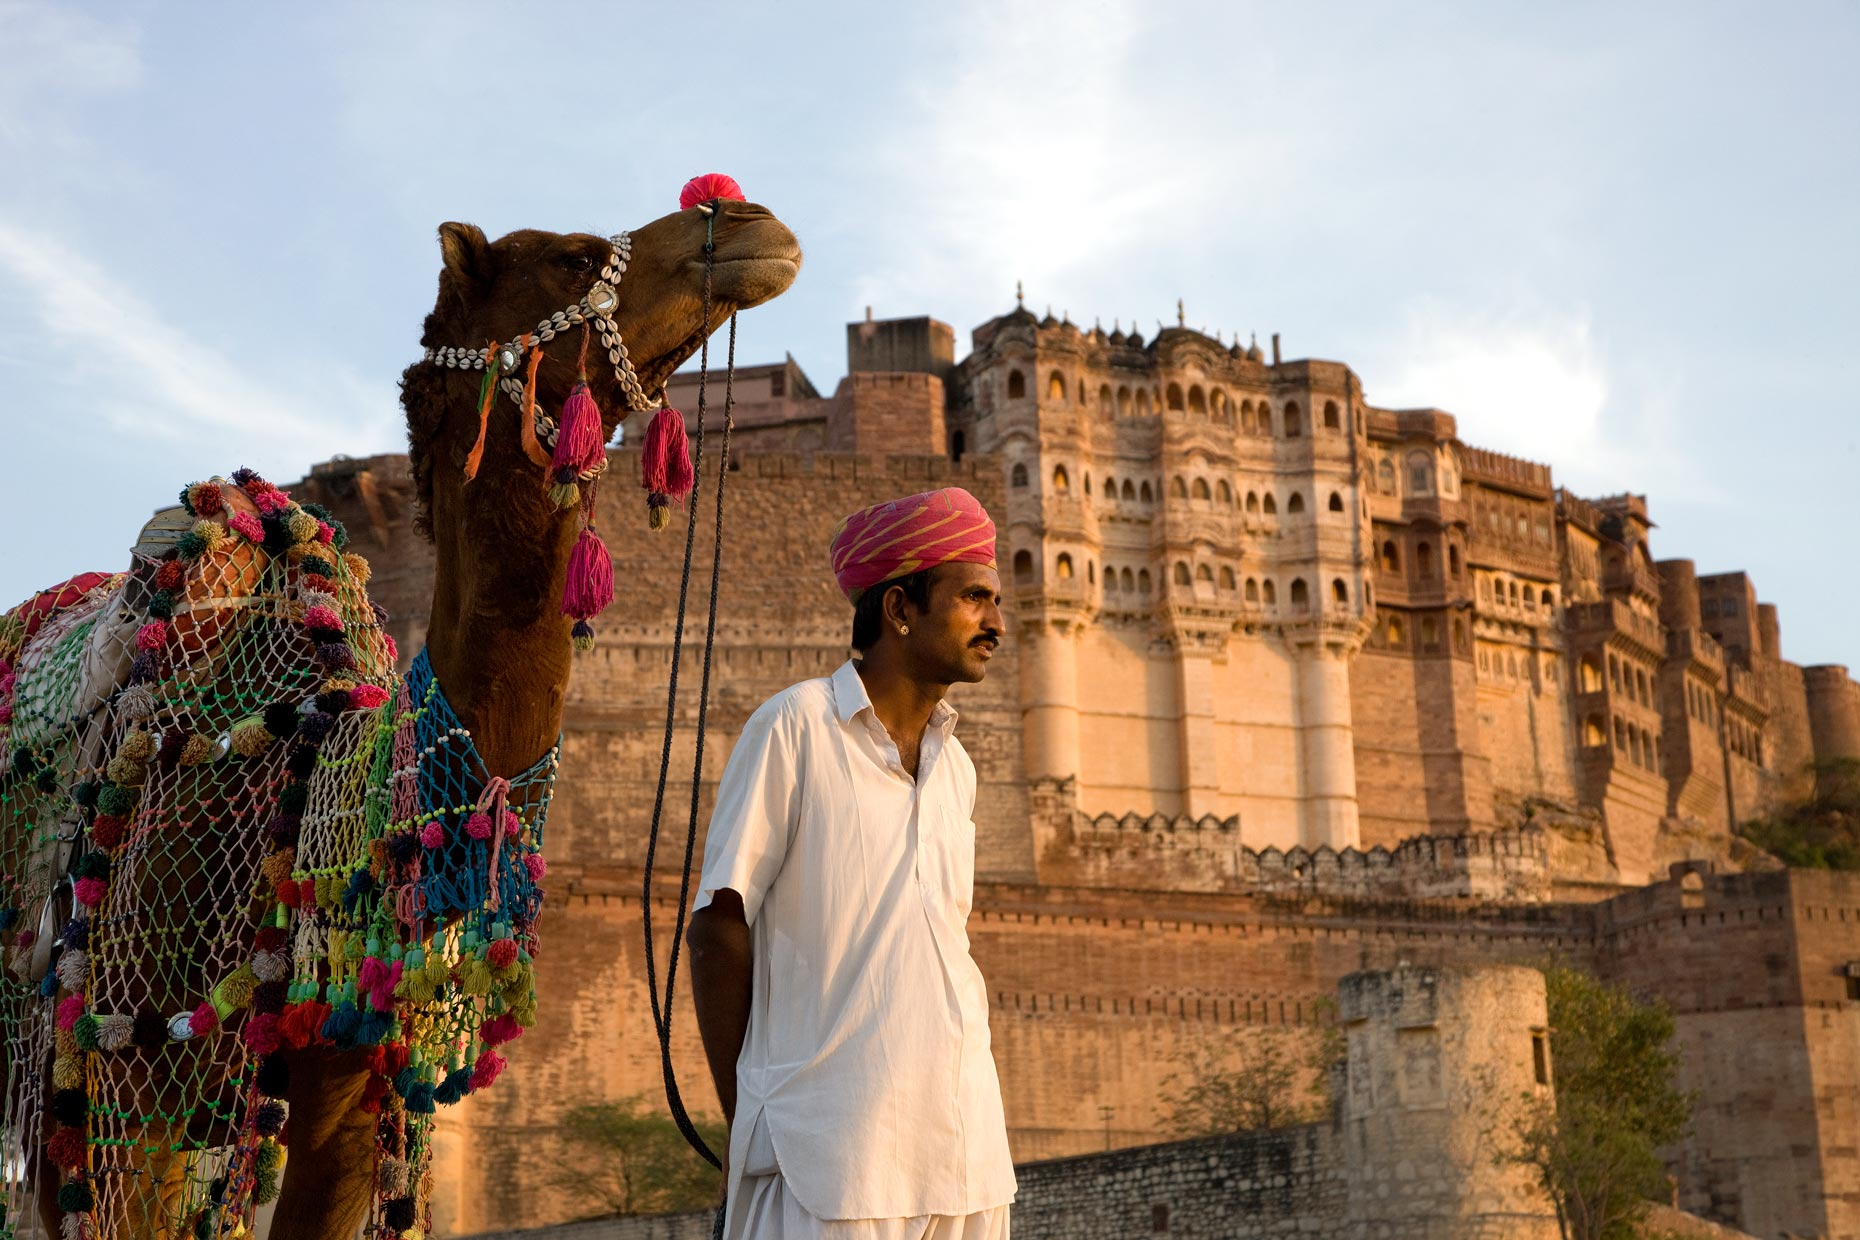 camel owner in front of fort in Jaipur